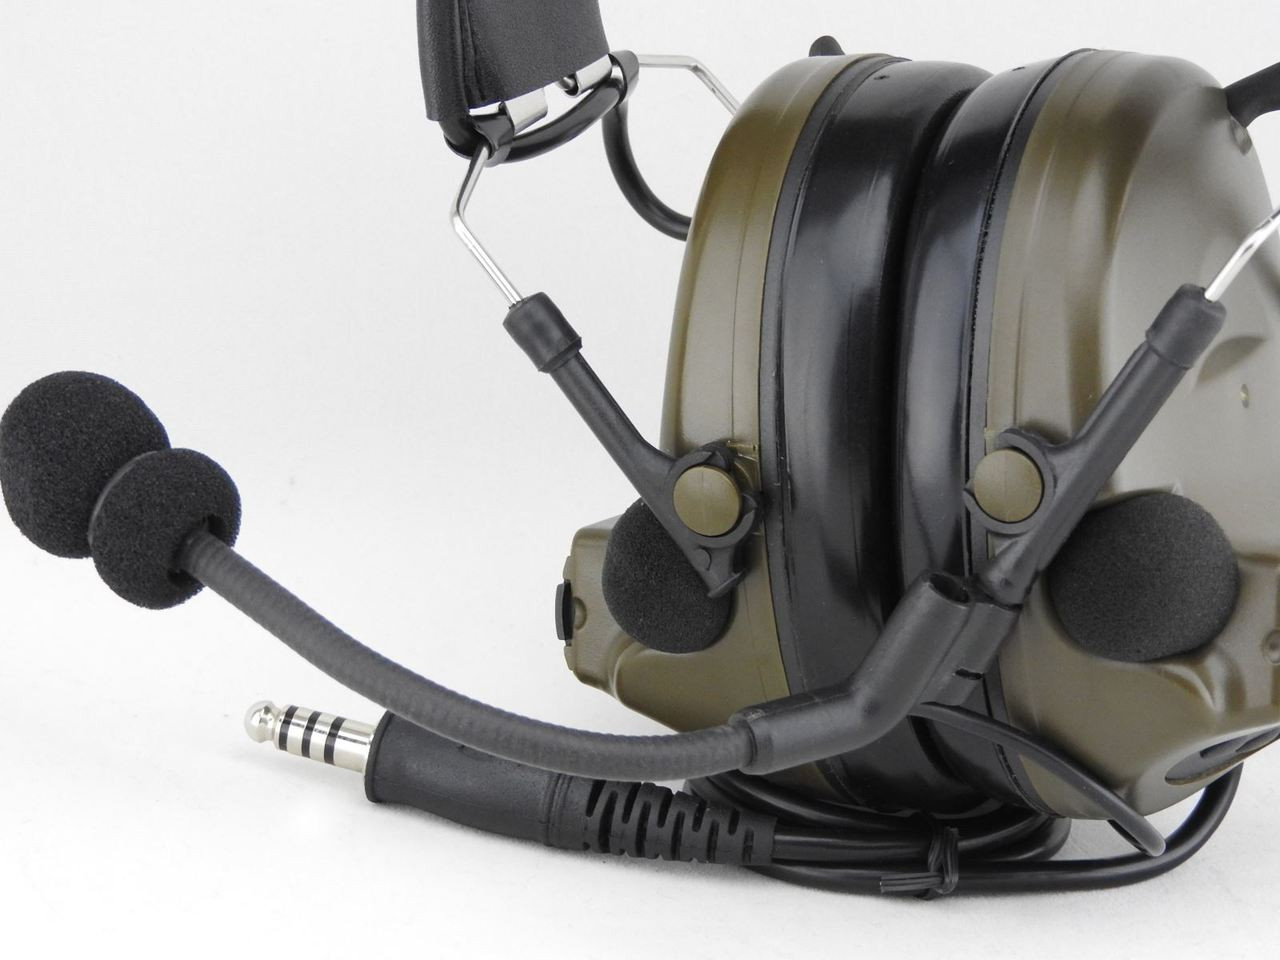 d0077152132 AIRSOFT TOMTAC COMTAC II 2 HEADSET MIC BOOM RADIO PELTOR DESIGN OD GREEN.  Your Price: £63.95 (You save £11.04). Image 1. Larger / More Photos